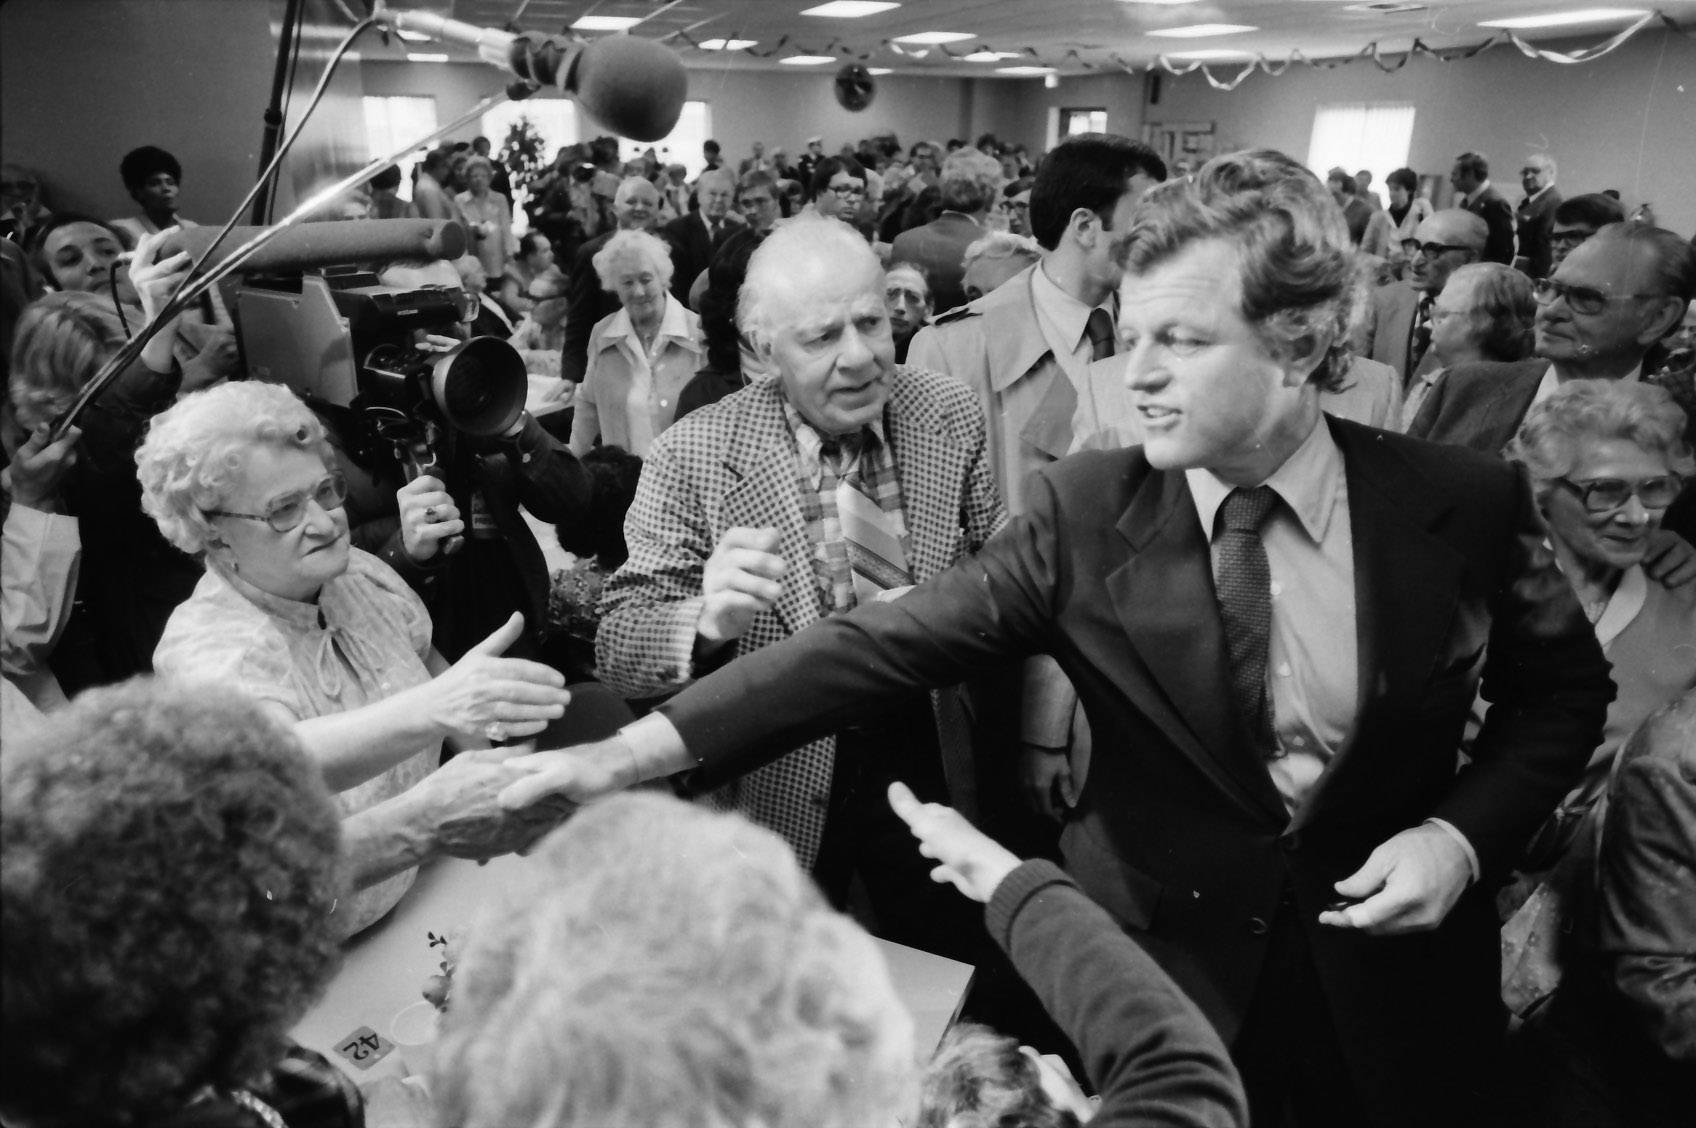 Ted Kennedy makes a visit to Chicago and greets supporters.